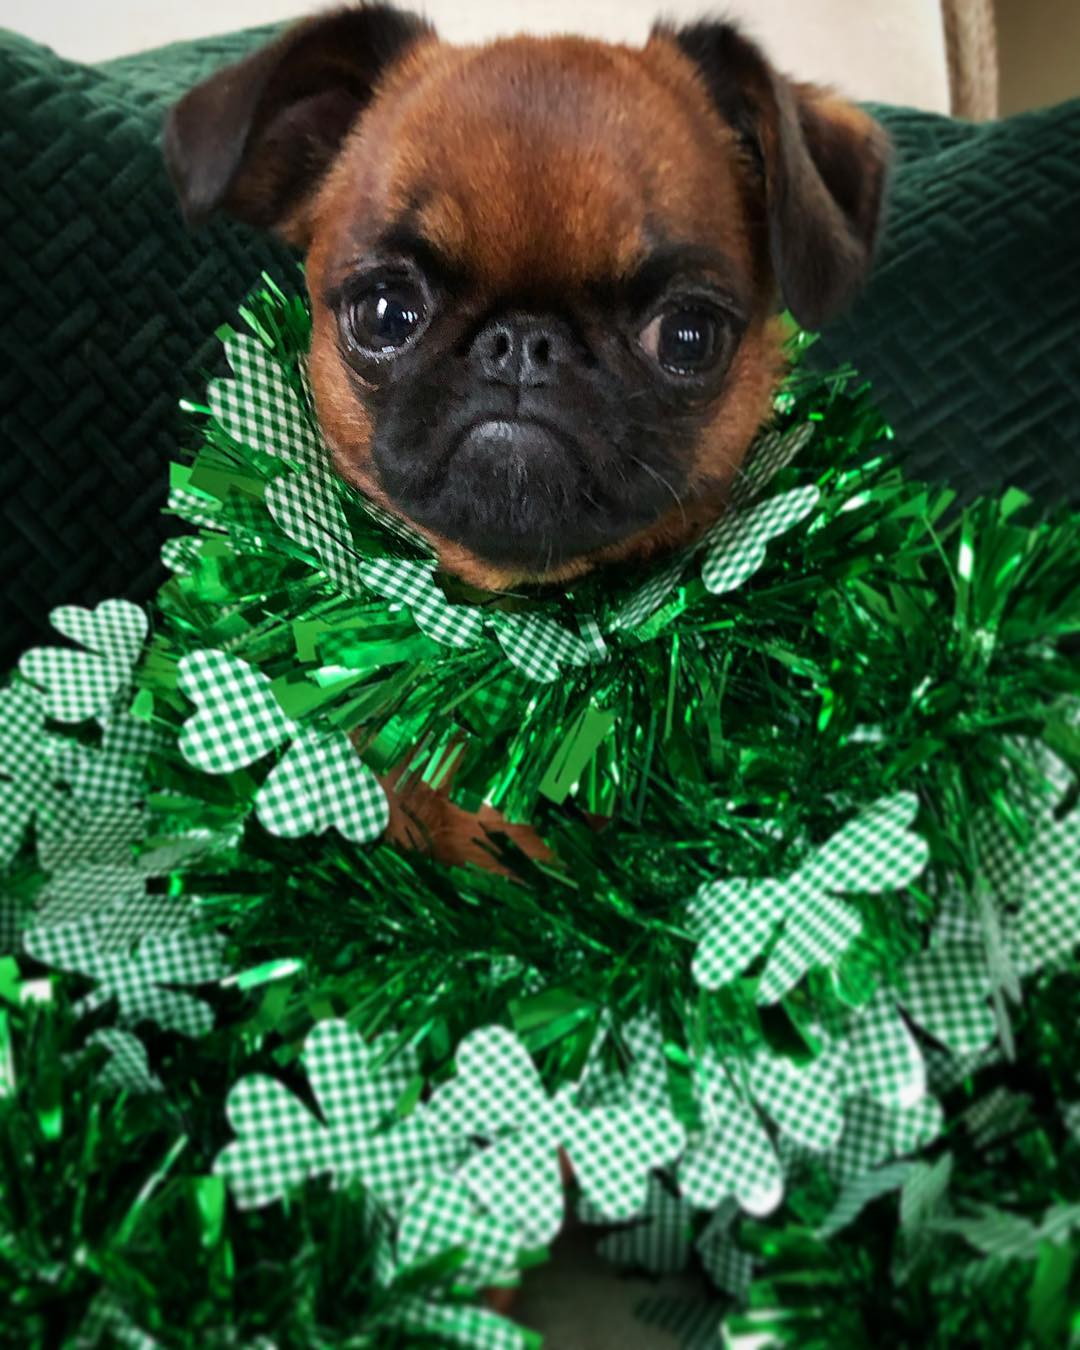 Happy St. Paddy's Day from Stanky P. McCloverbottom